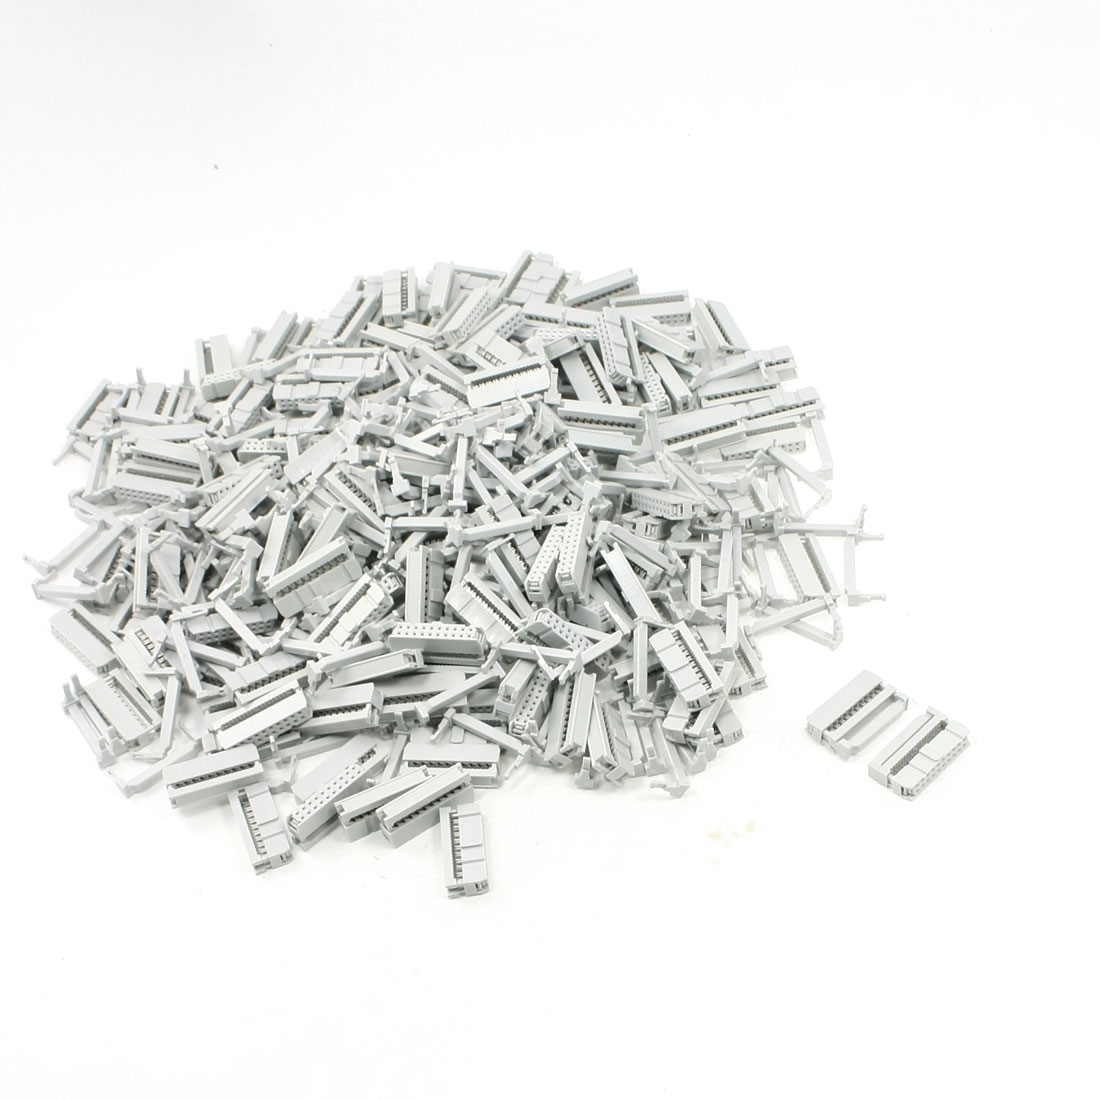 FC-20P 2.2mm Pitch Position Flat Cable IDC Socket Connector Light Gray 200 Pcs